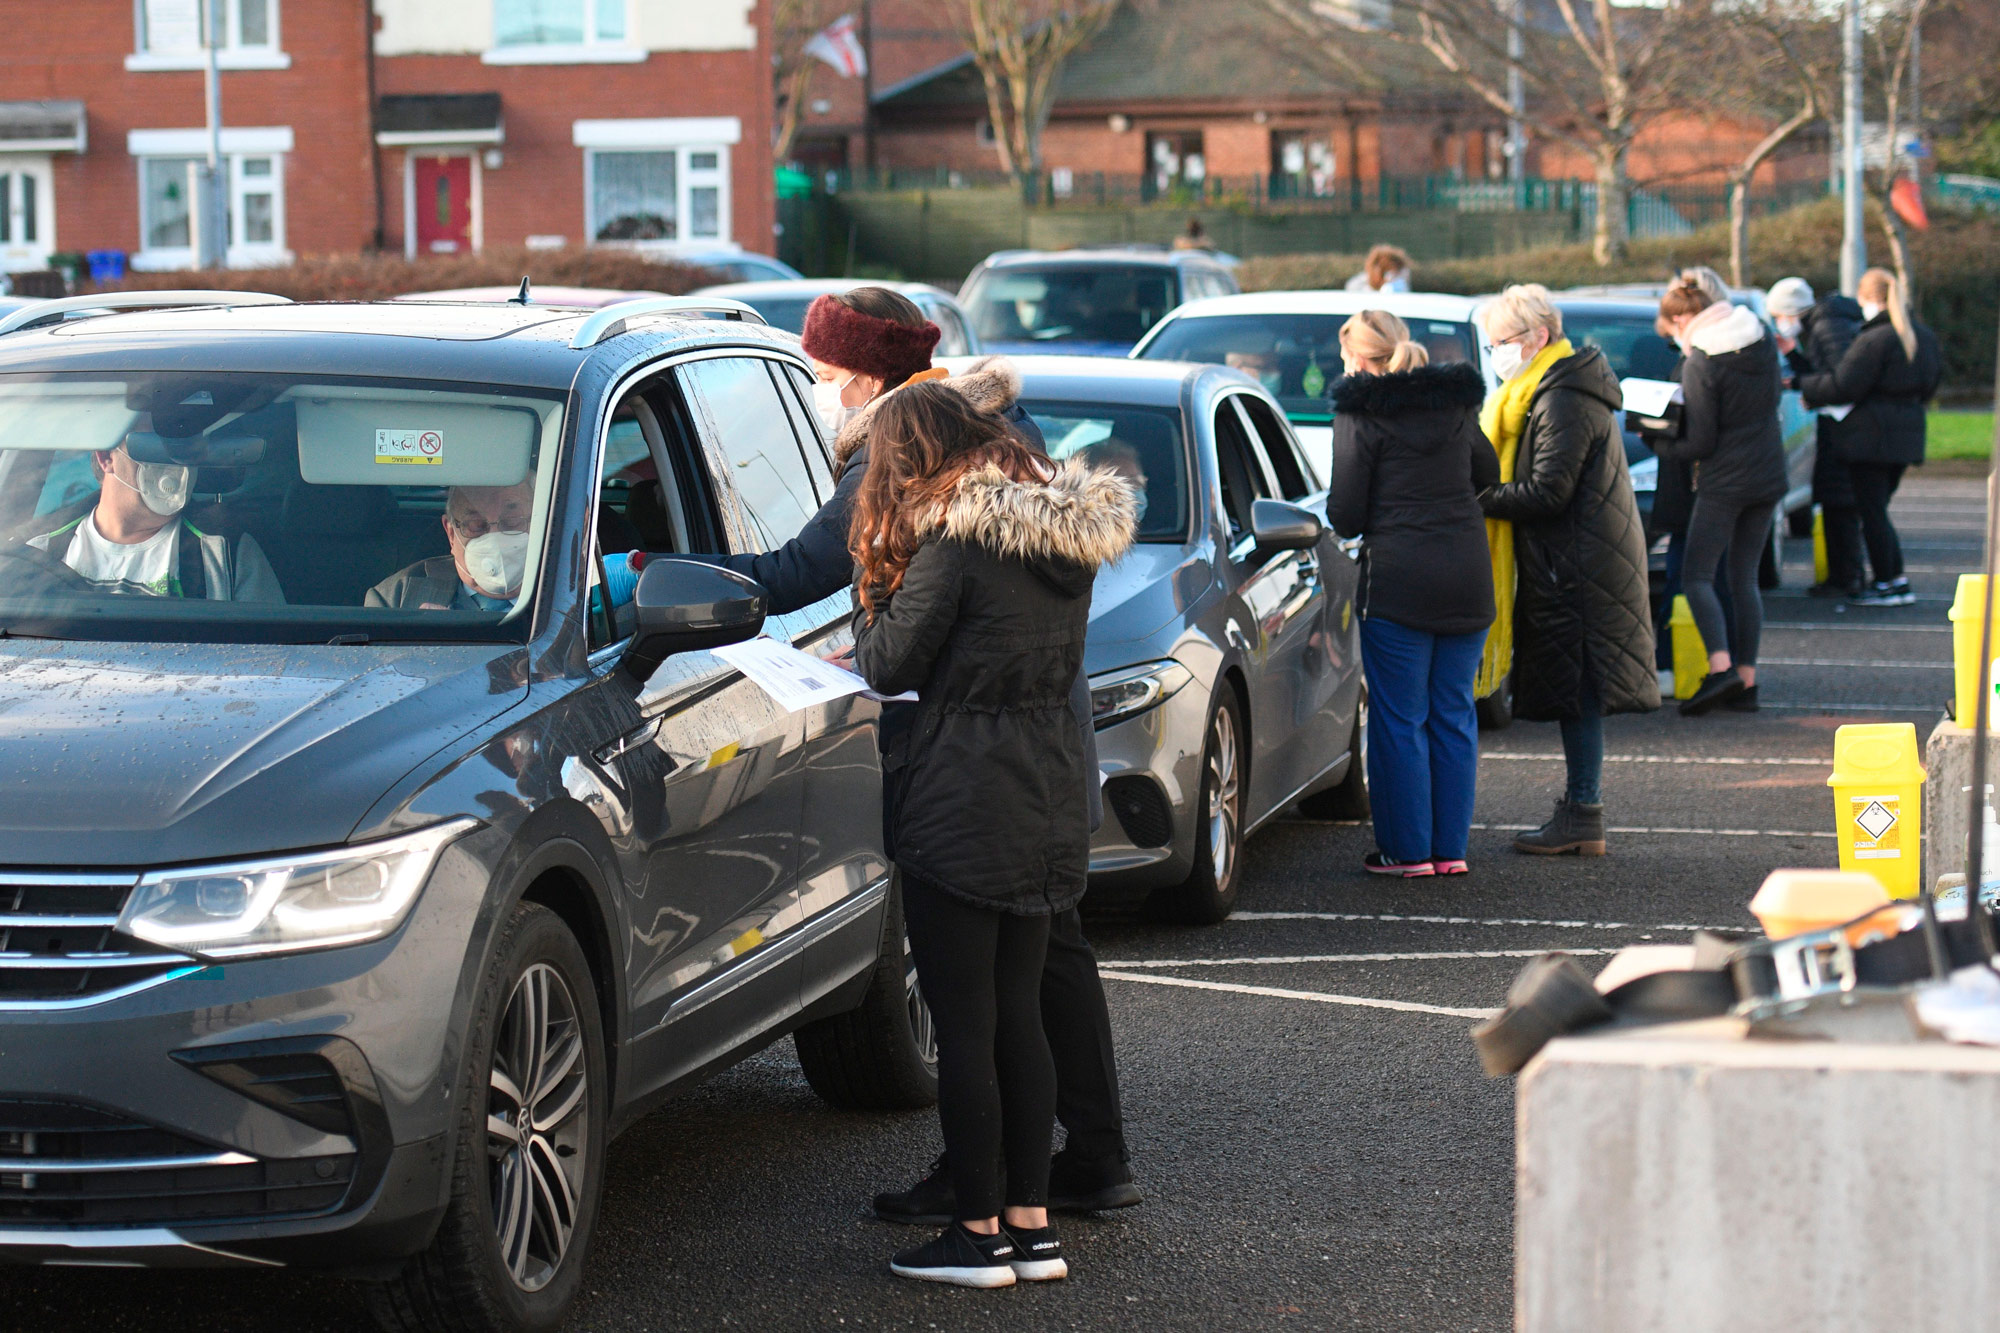 Staff deliver injections of the first dose of the Pfizer-BioNTech Covid-19 vaccine to patients at a drive-in vaccination center in Hyde, Greater Manchester, England on December 17.